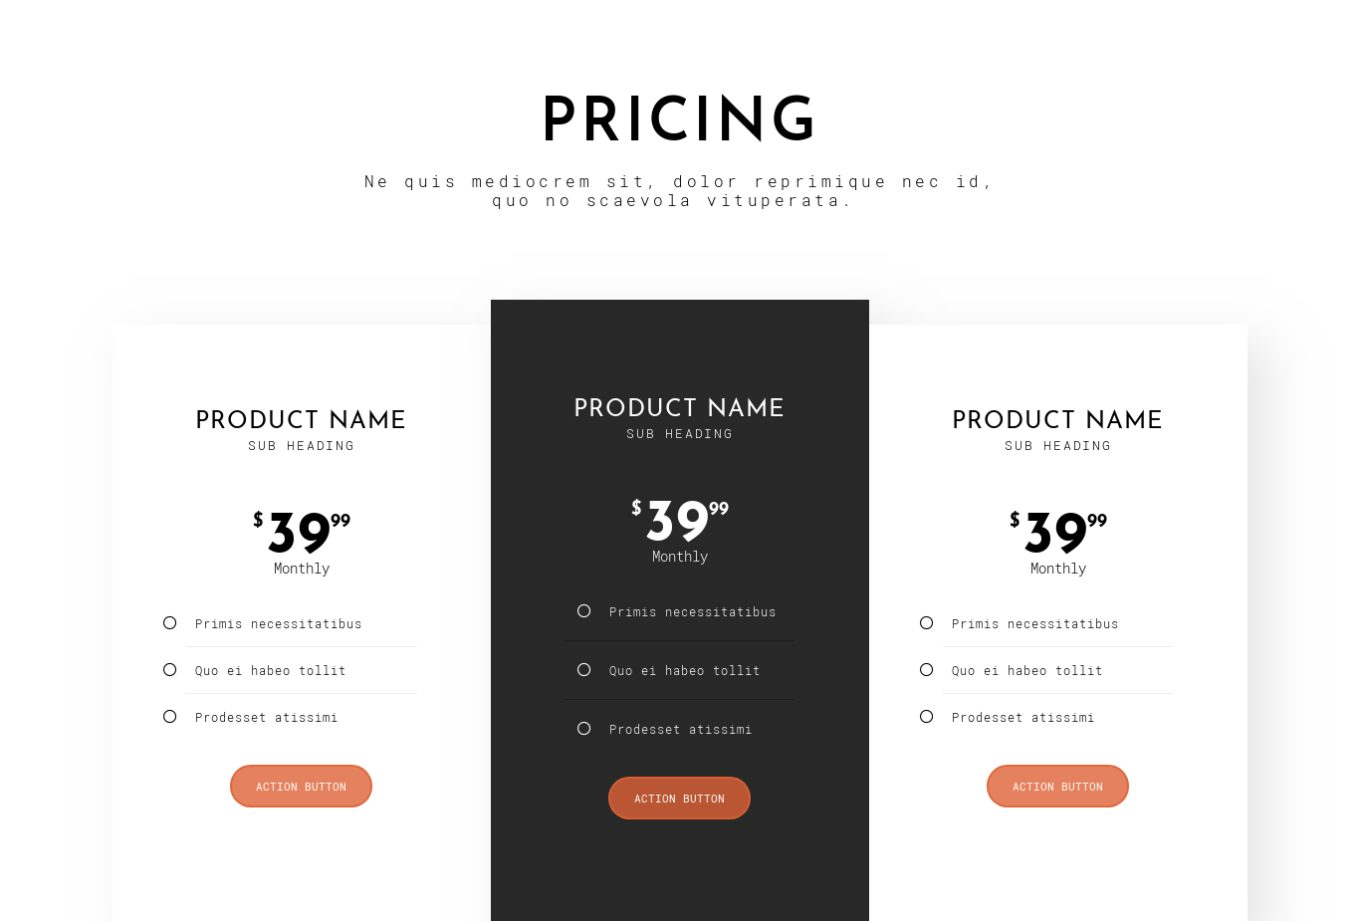 Pricing Table 7